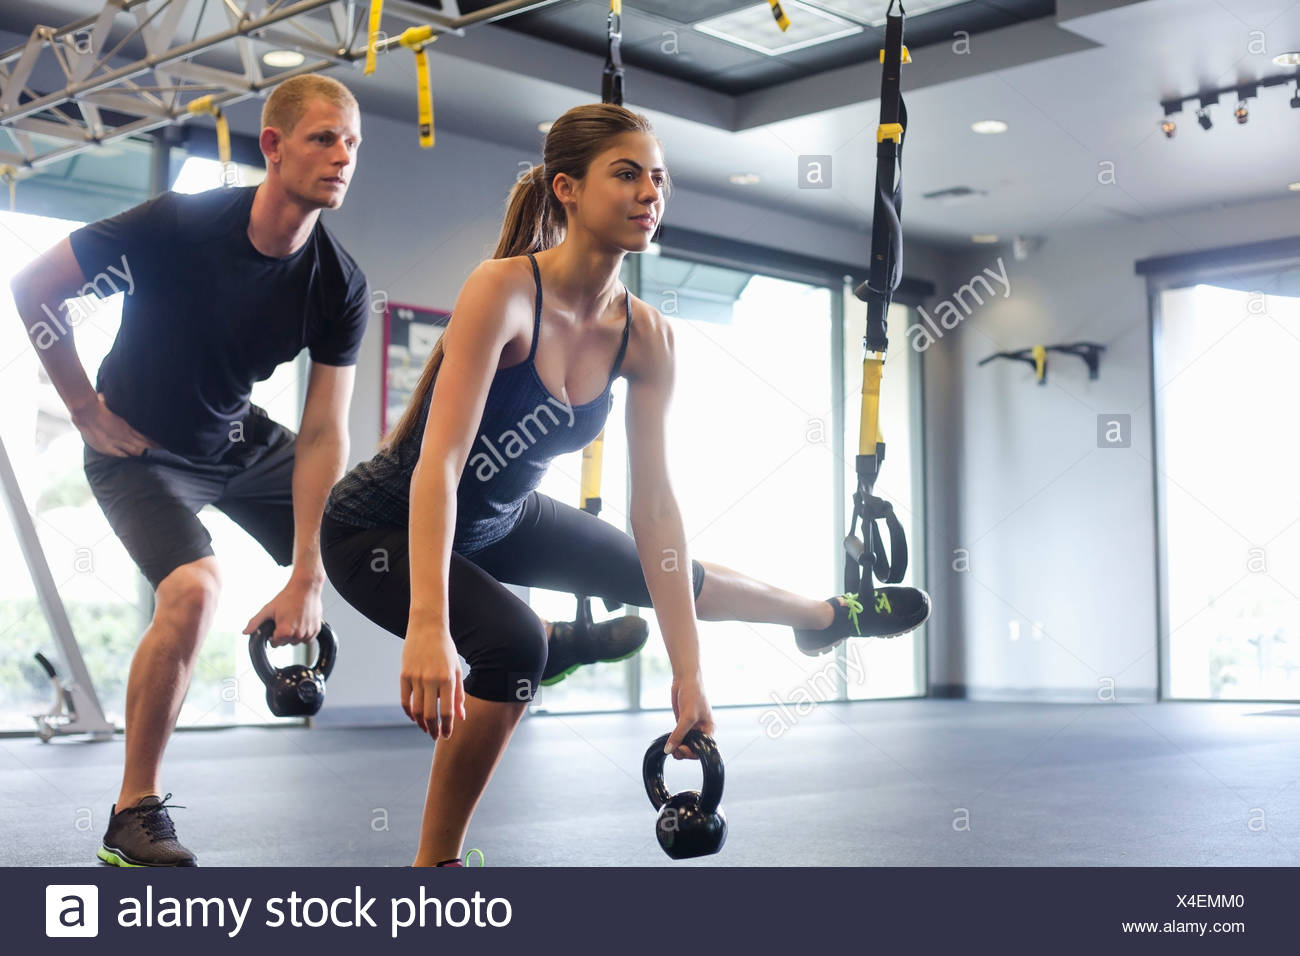 Couple working out with weights - Stock Image